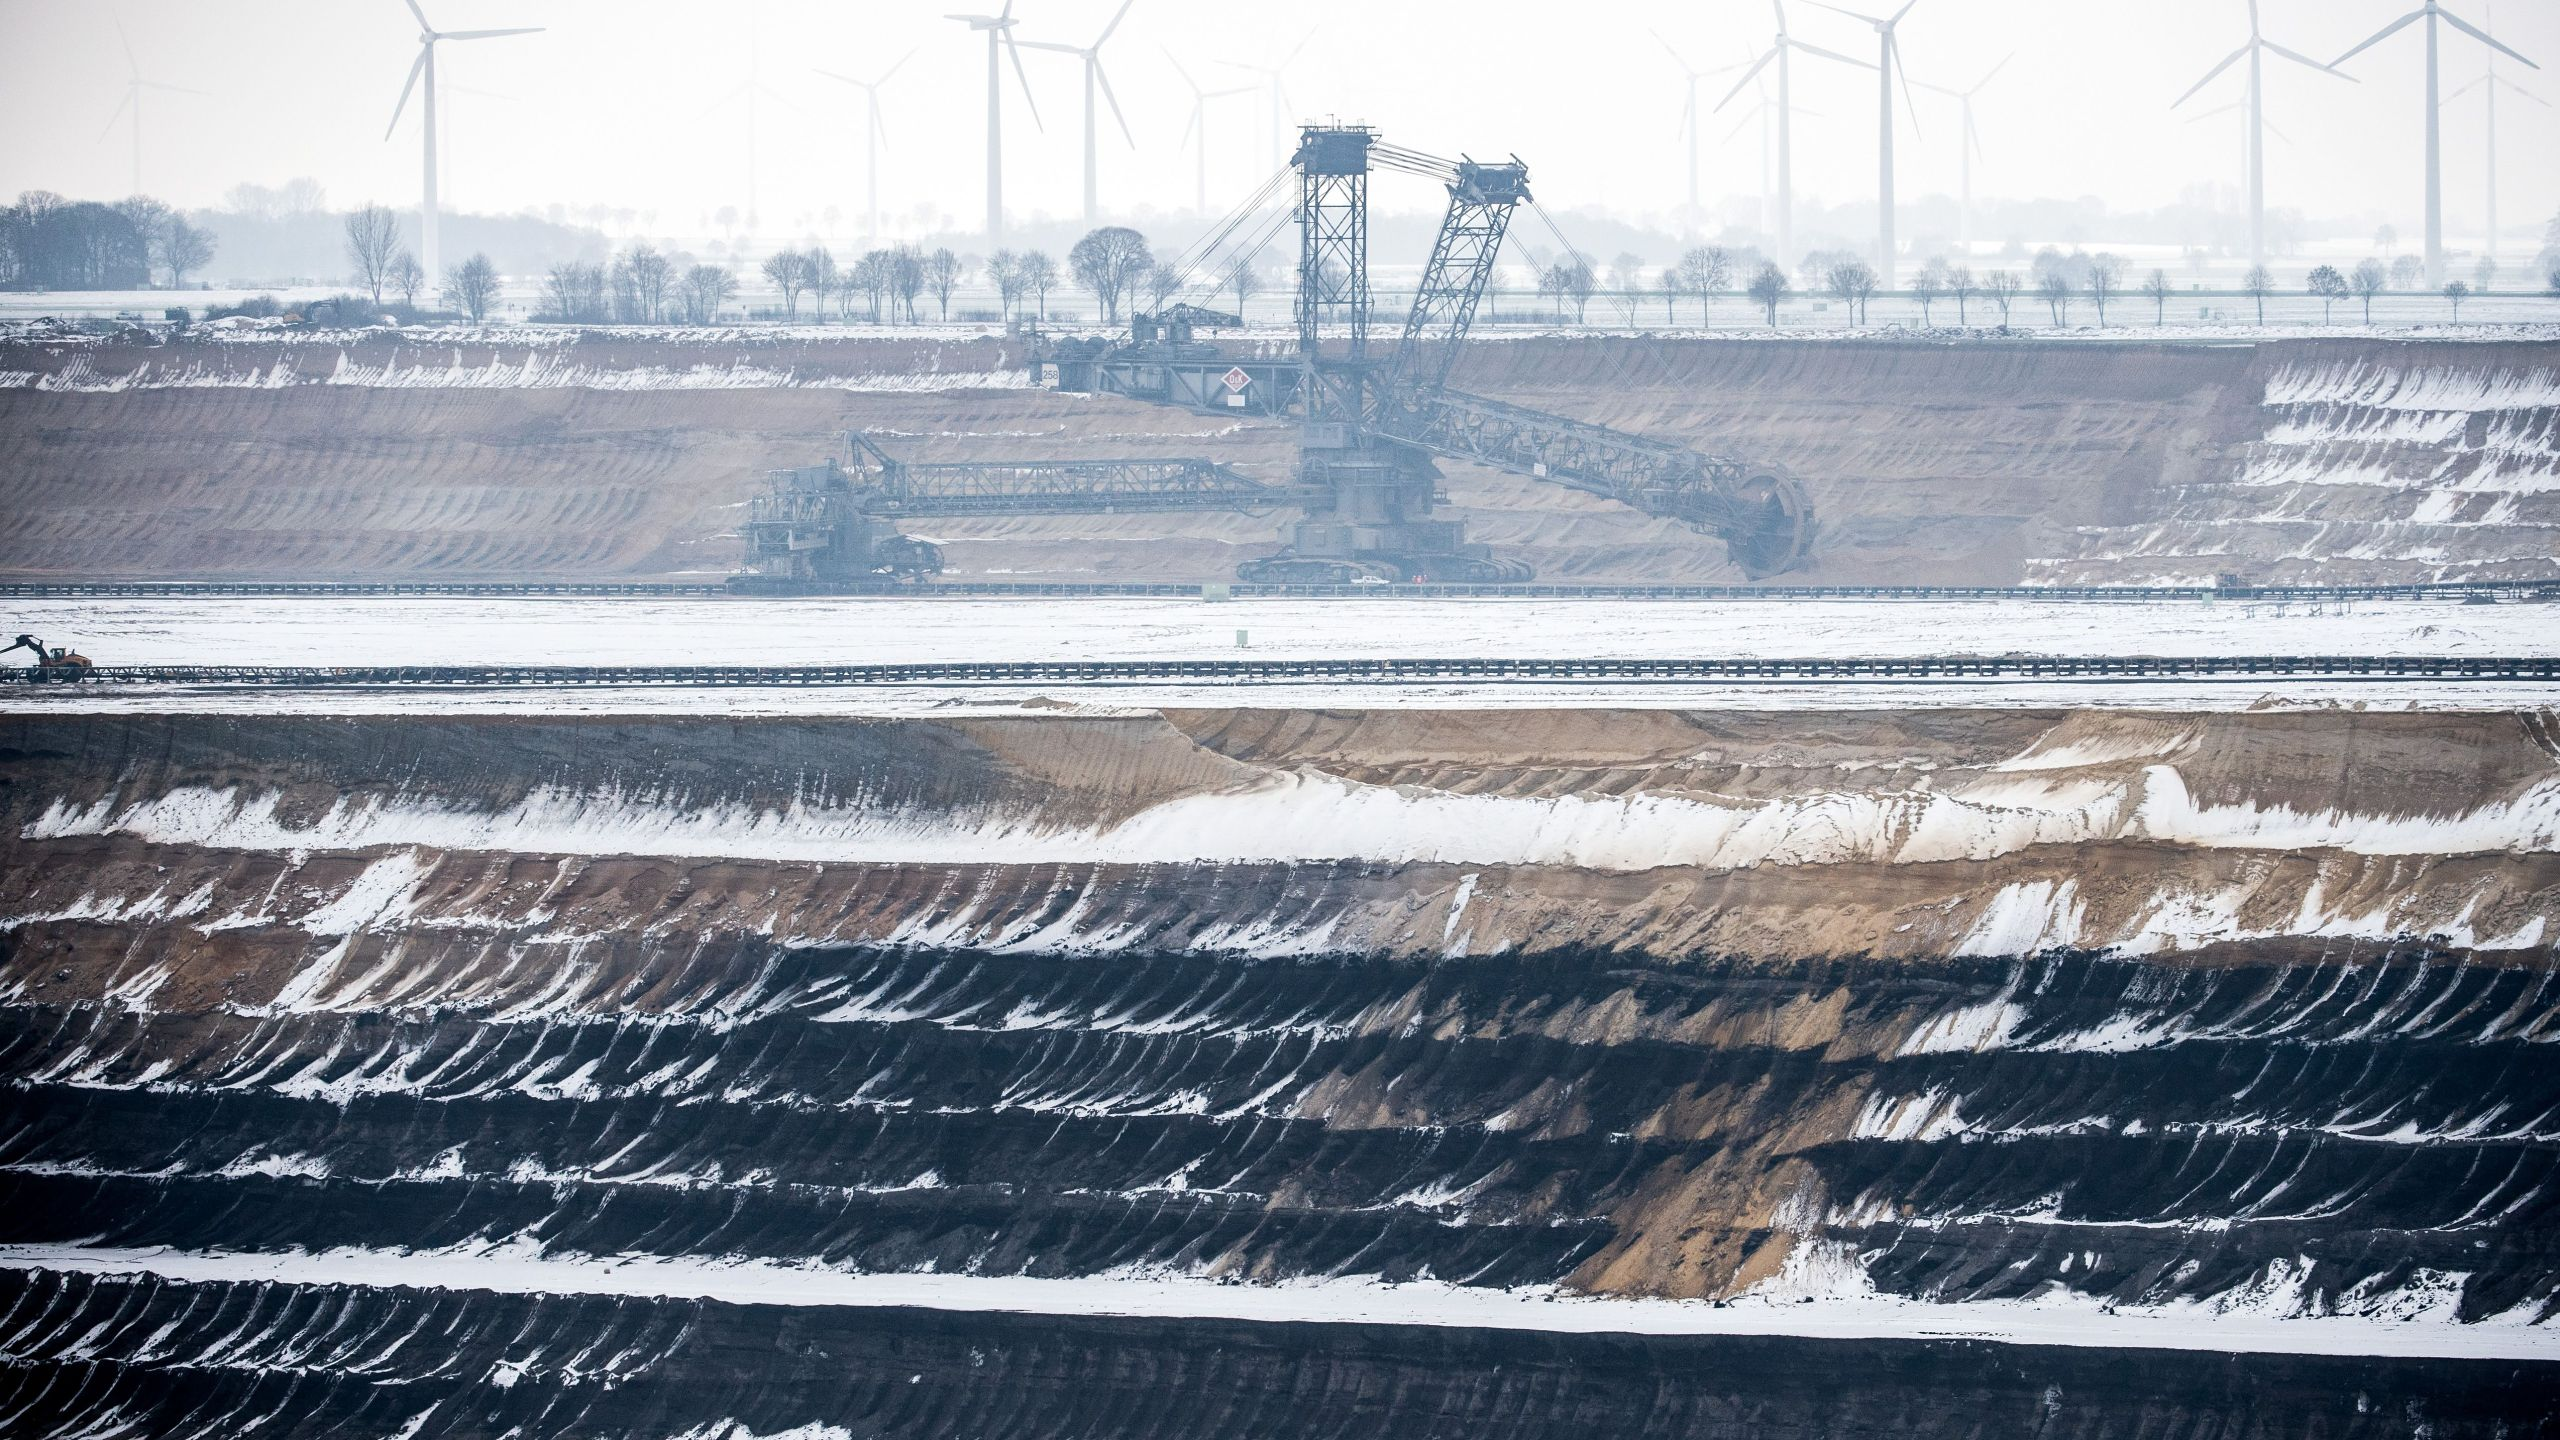 A bucket wheel excavator operates to dig brown coal at the Garzweiler lignite opencast mine in Jackerath, western Germany, on Jan. 25, 2019. (Credit: FEDERICO GAMBARINI/AFP/Getty Images)